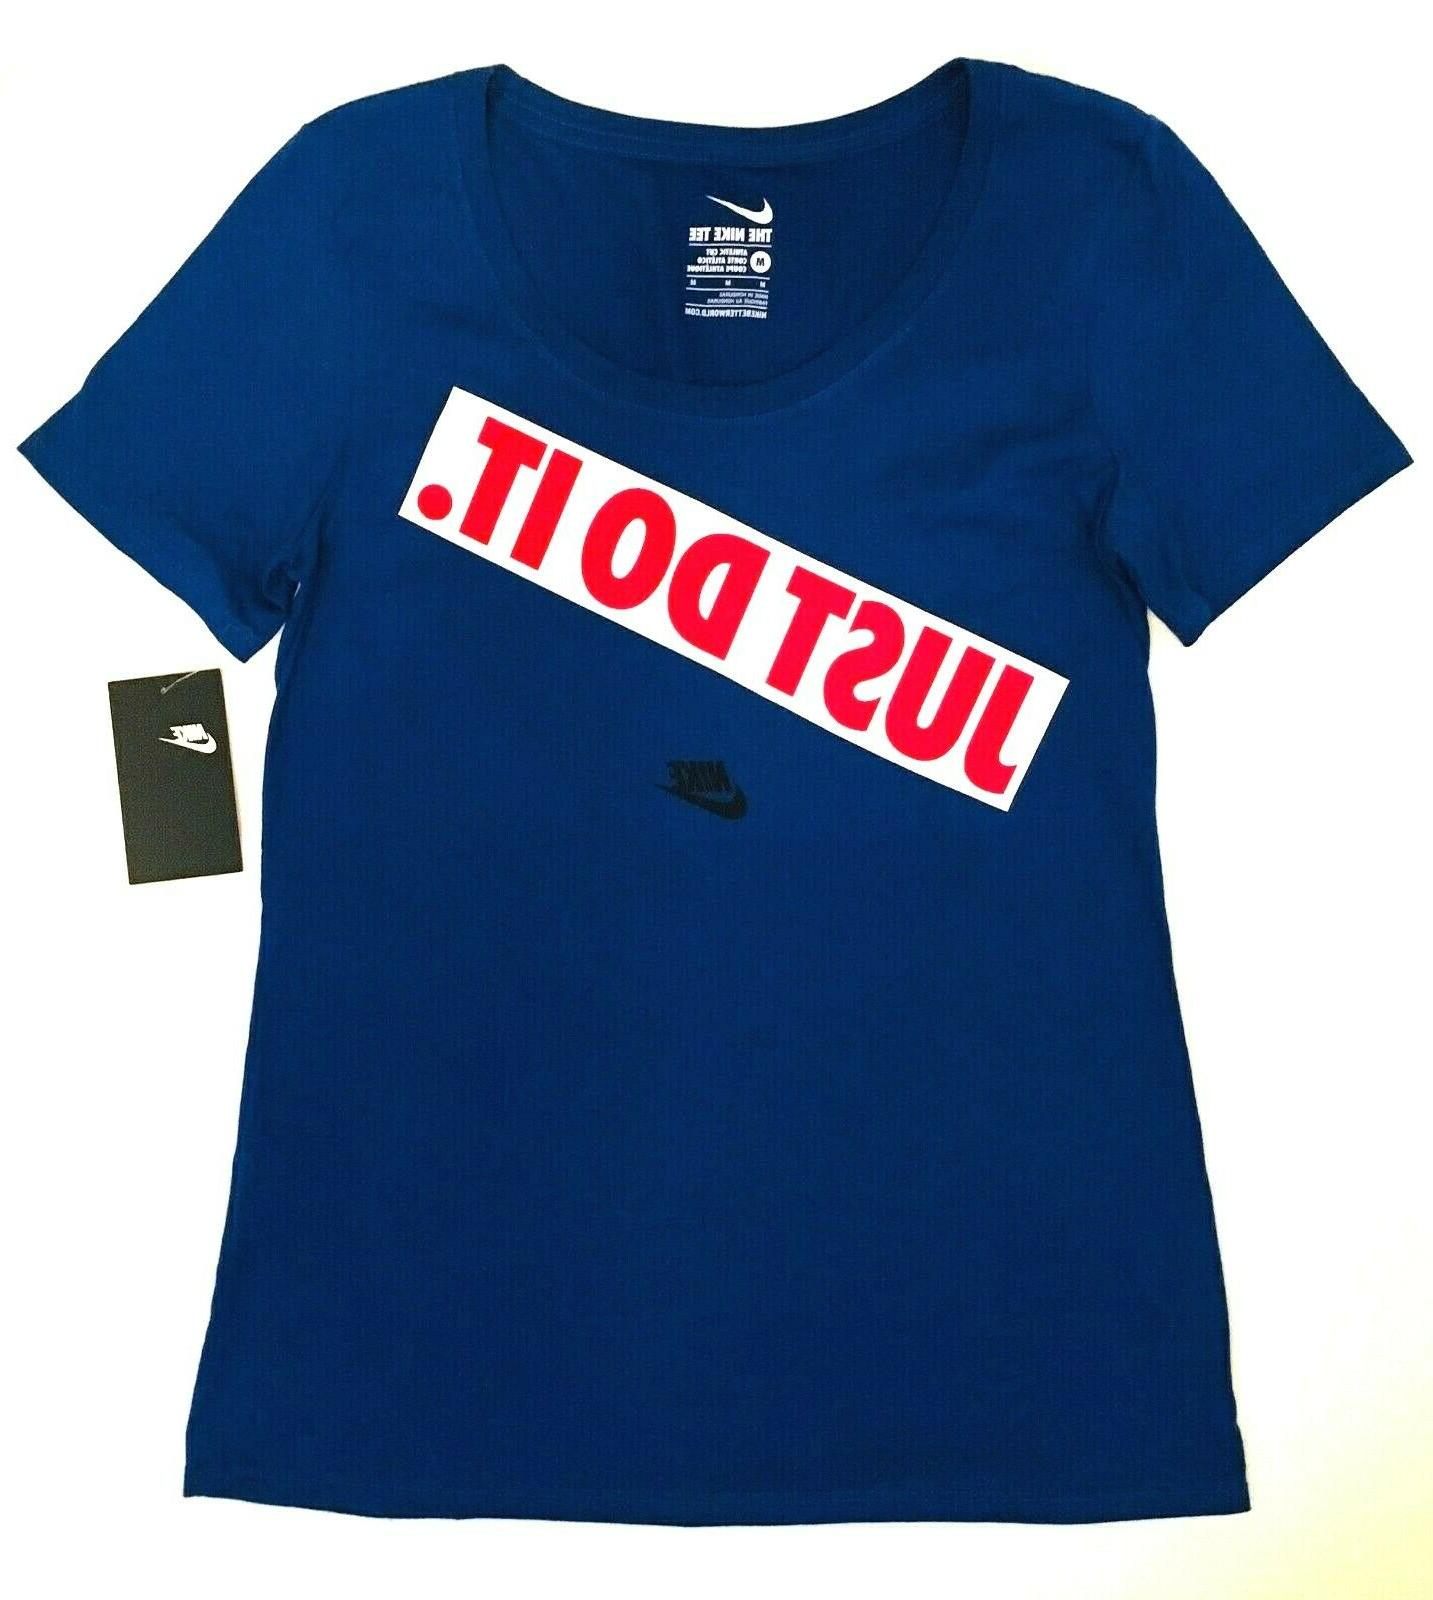 NIKE T SHIRTS AUTHENTIC PICK DRIFIT GRAPHIC WORKOUT TEES XS -